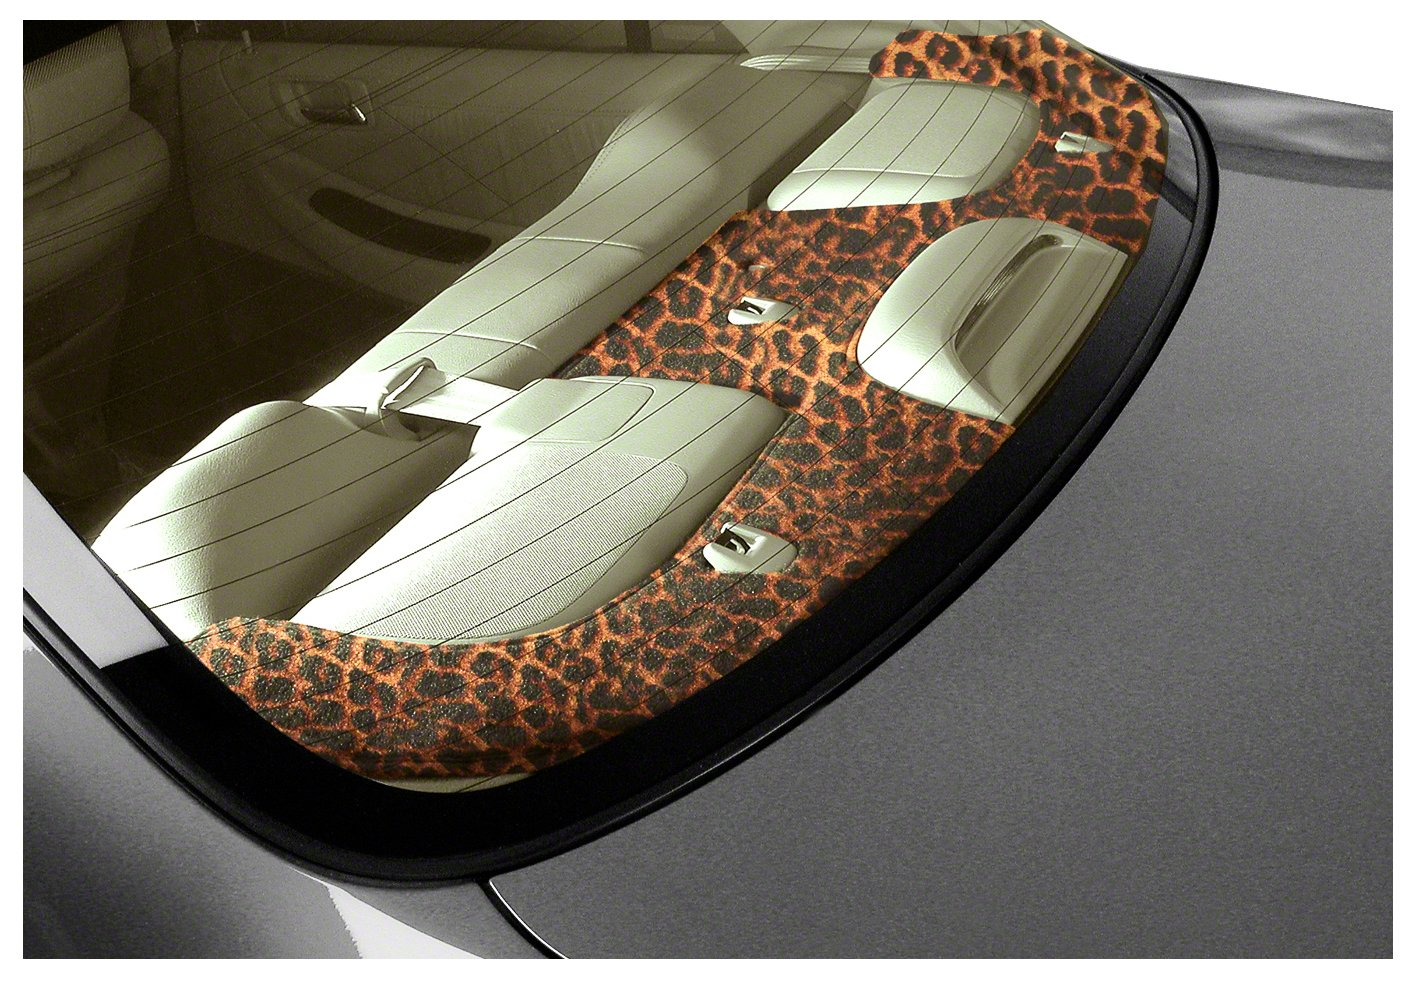 Coverking Custom Fit Dashcovers for Select Oldsmobile Cutlass Ciera Models - Velour (Cheetah) by Coverking (Image #1)